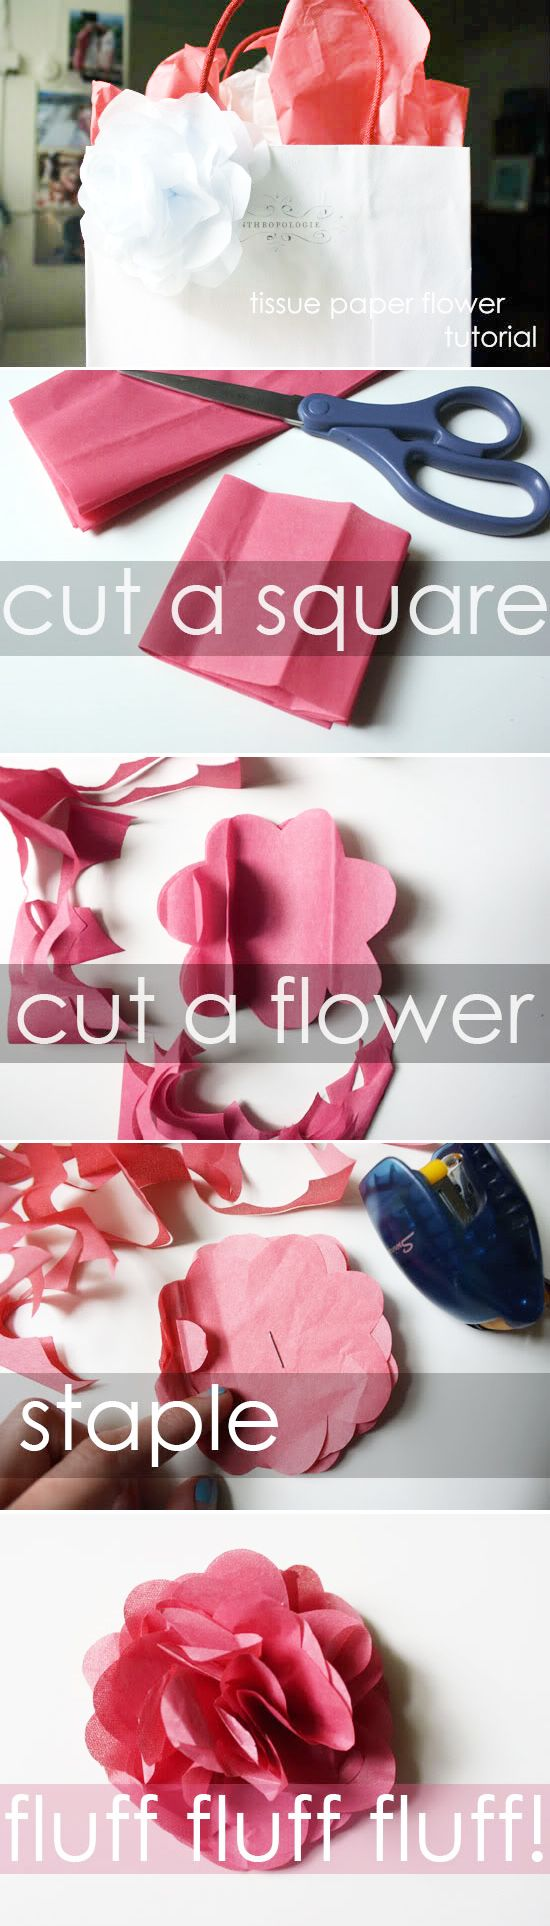 Add a little flower power to any gift sack to make a statement that is simple and sweet!: Gift Ideas, Tissue Paper Flowers, Tissue Flower, Flower Tutorial, Diy Gift Bag